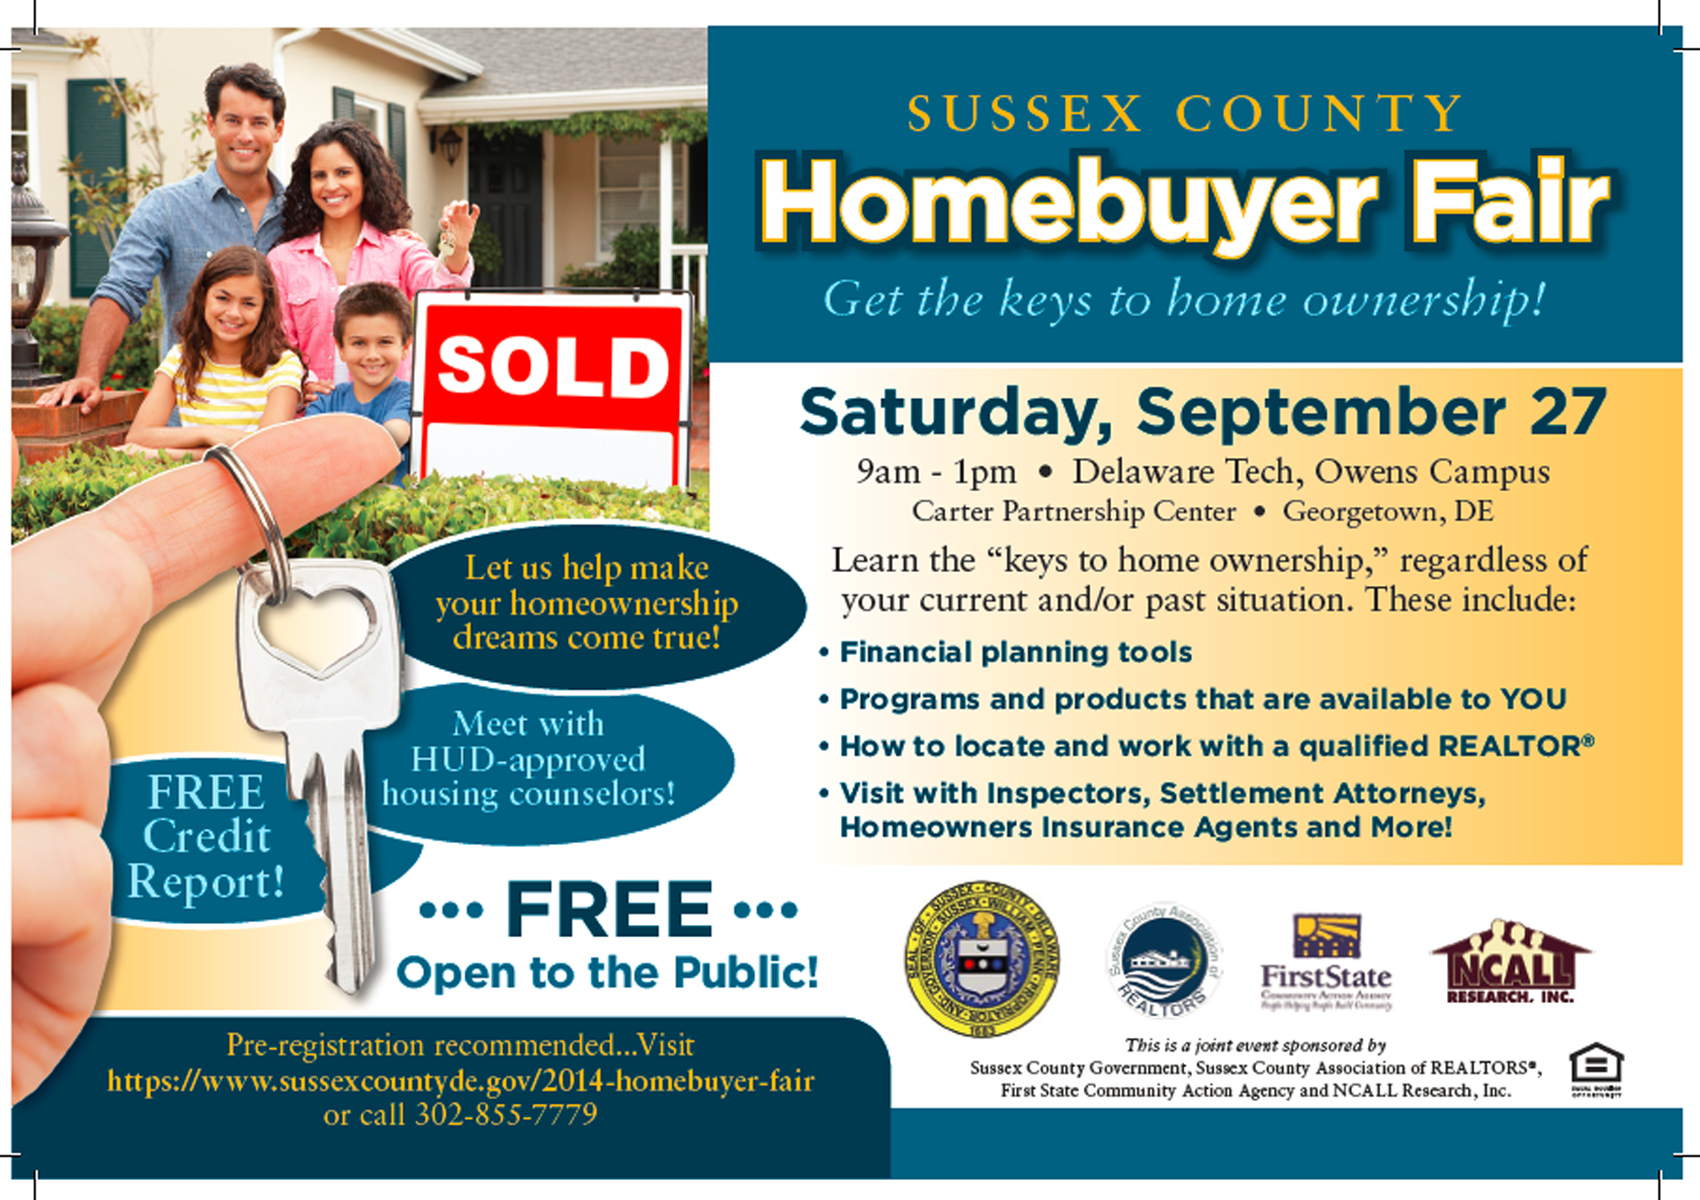 Sussex County Homebuyer Fair